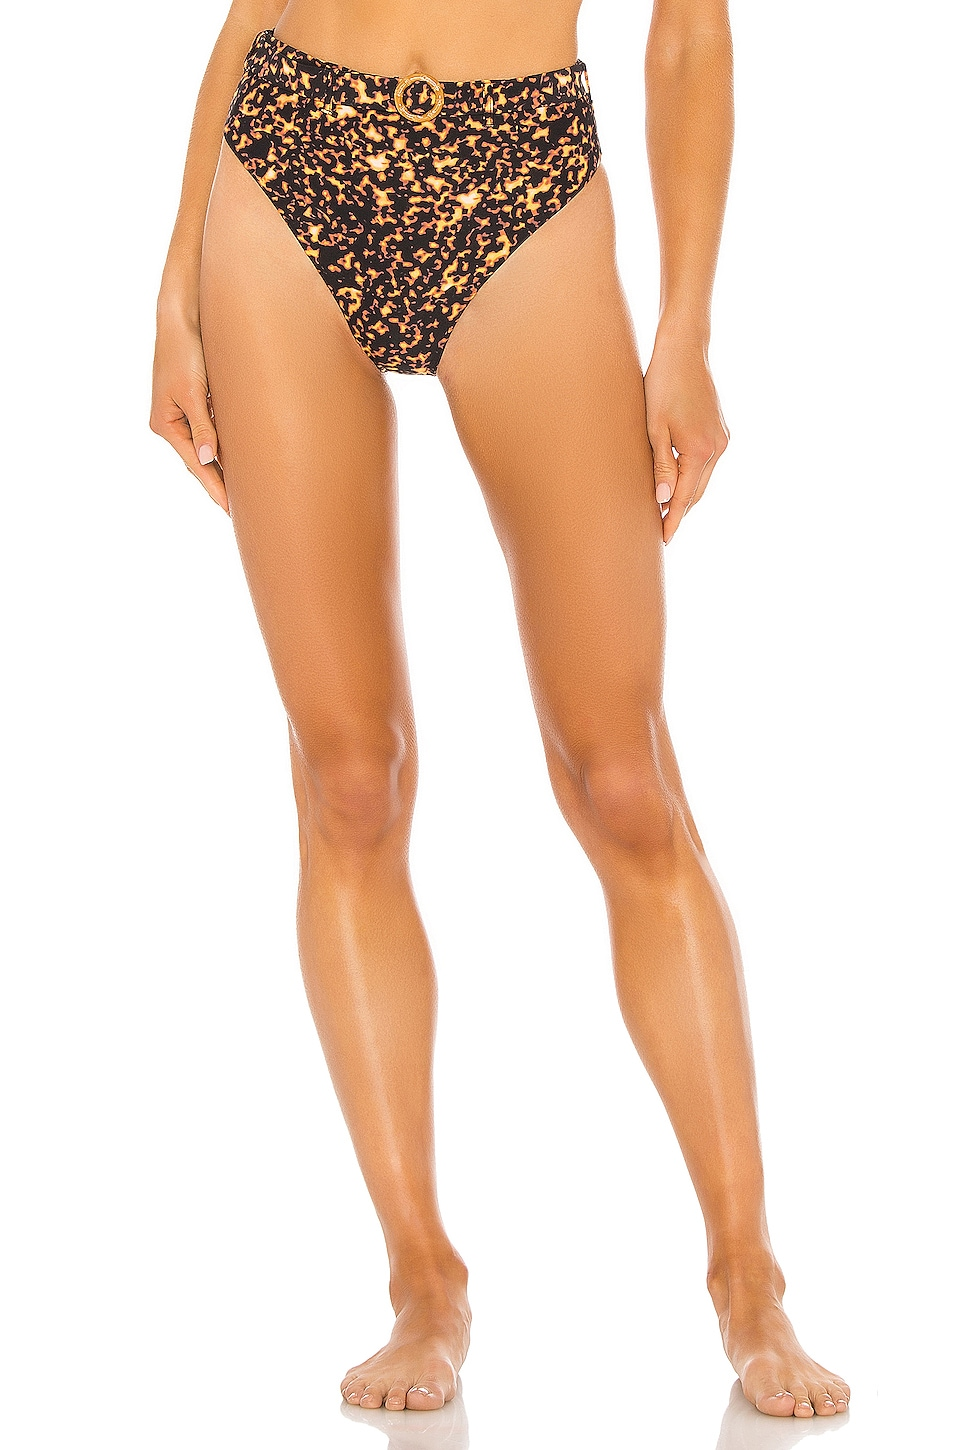 WeWoreWhat Emily Bikini Bottom in Tortoise Shell